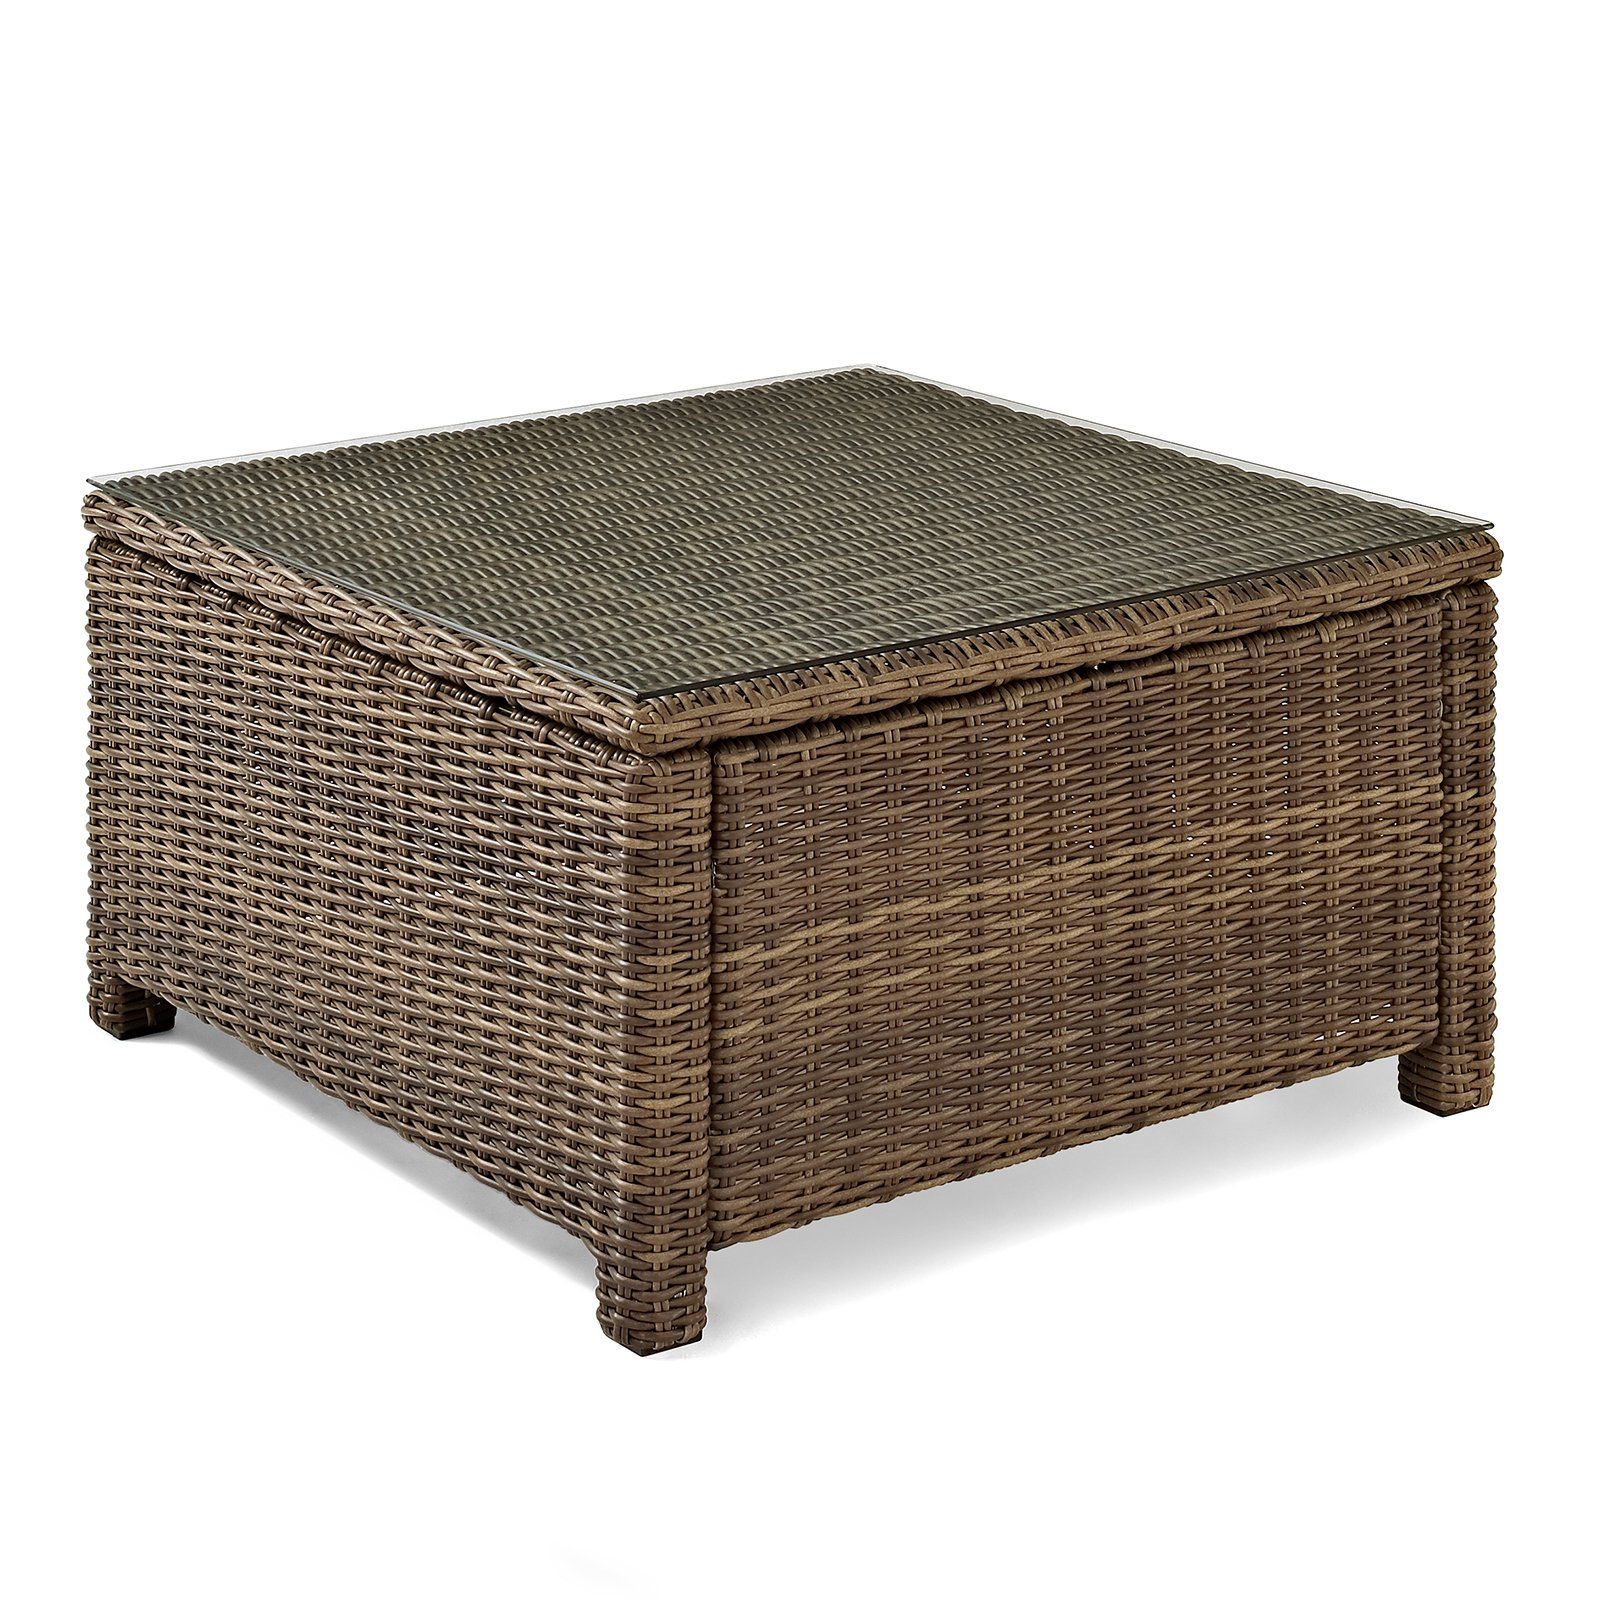 Crosley Furniture Bradenton Outdoor Wicker Sectional Glass Top Coffee Table by Modern Marketing Concepts